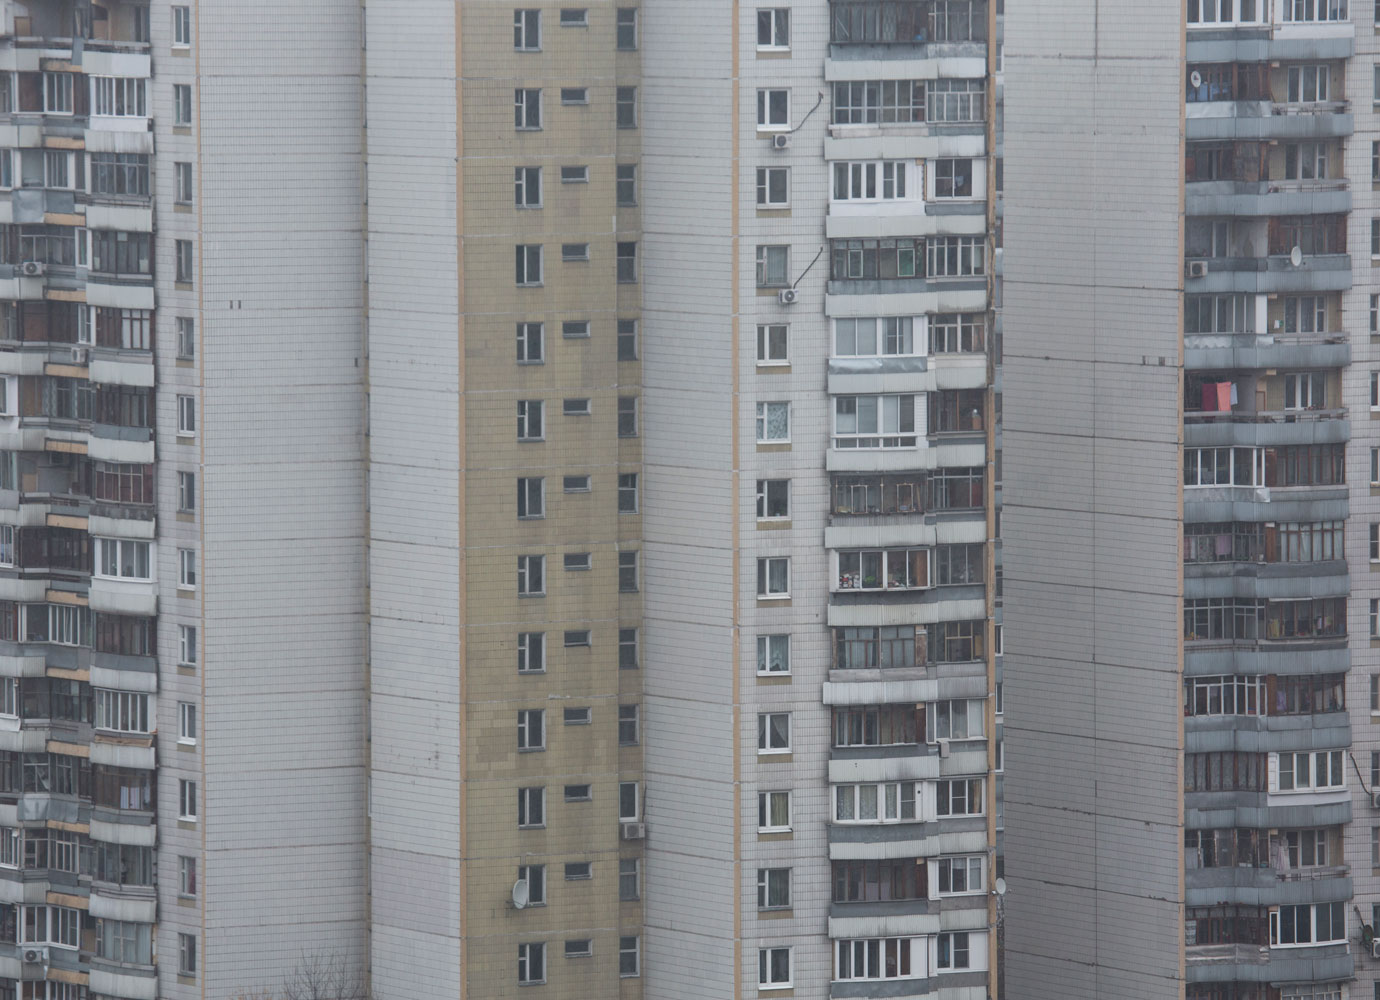 How one Russian filmmaker captured the soundtrack to life in Moscow's Soviet prefab housing